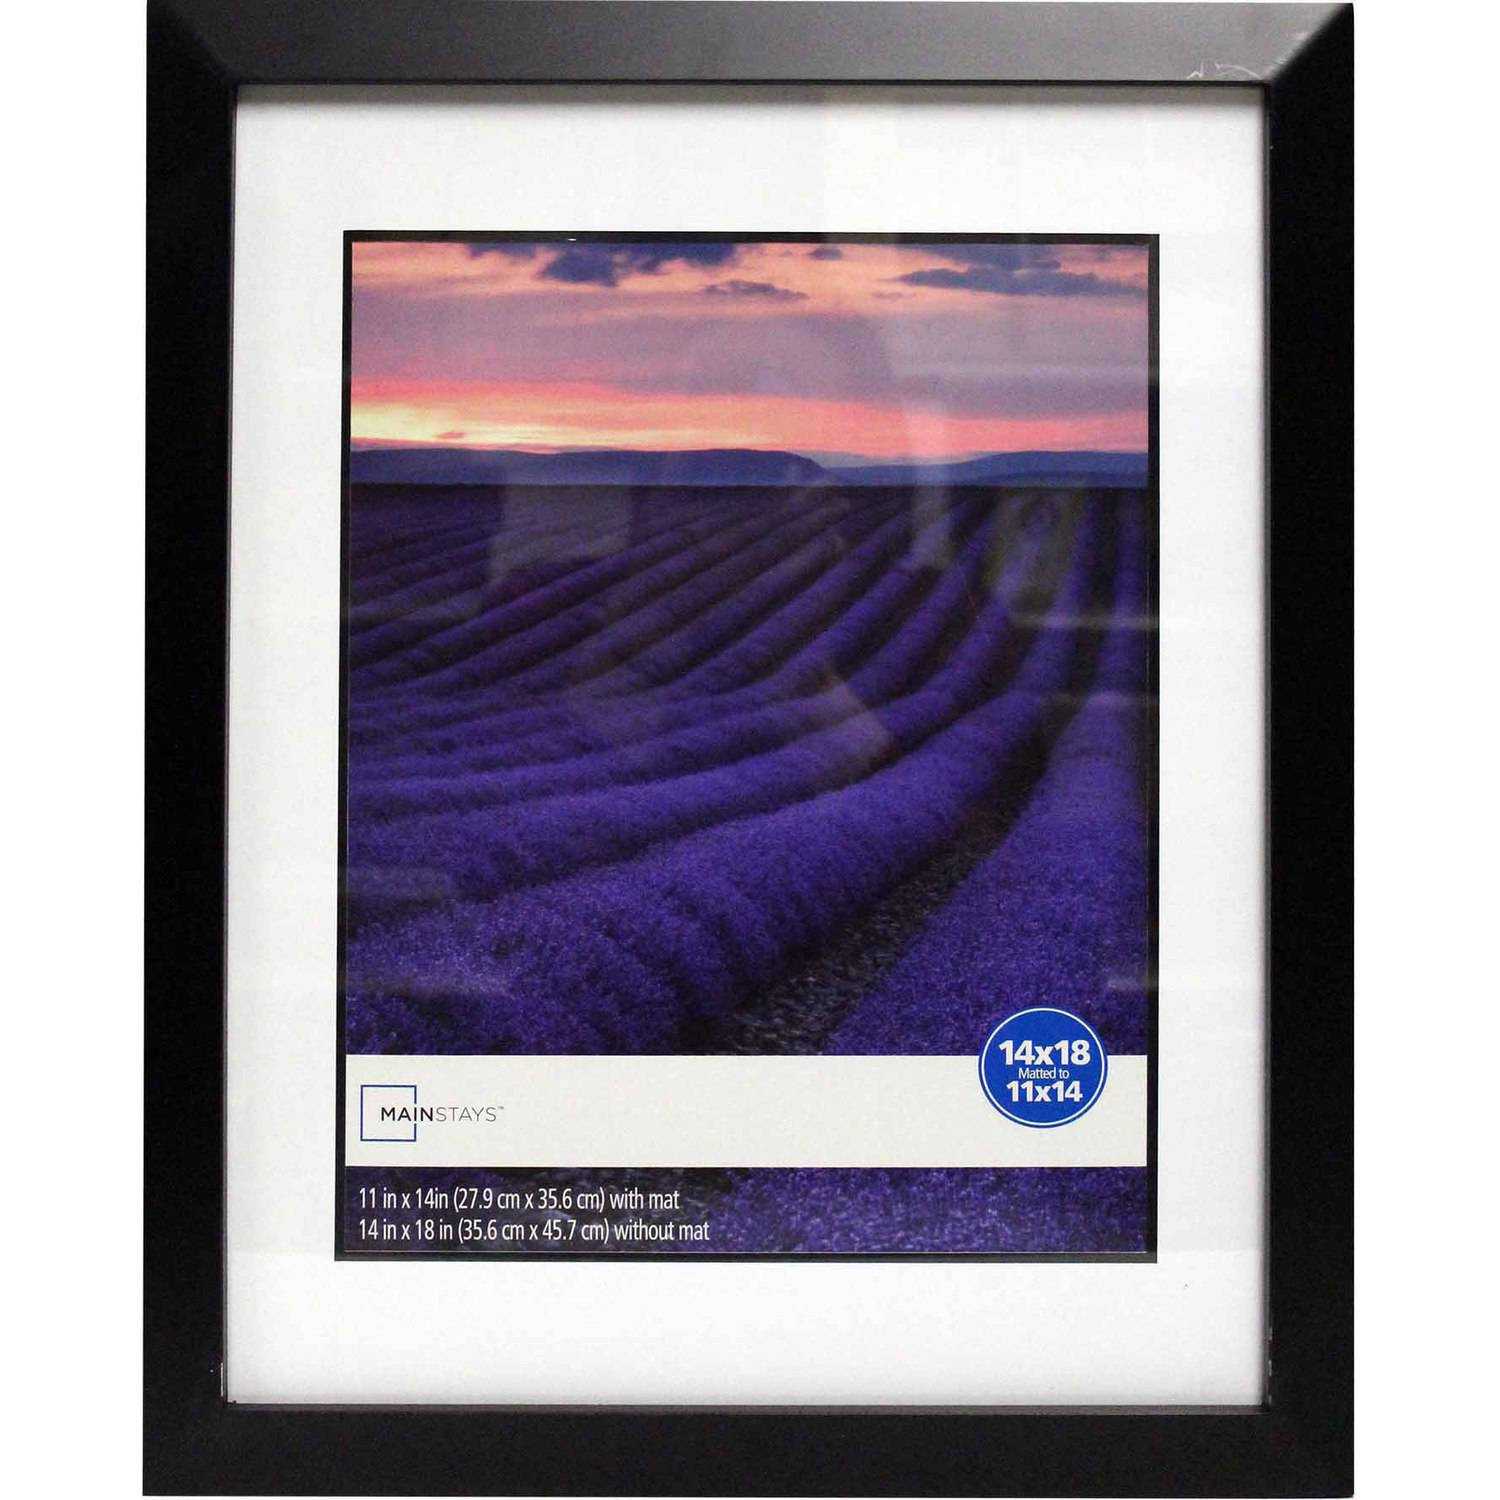 Mainstays Wide Picture Frame, 14x18 matted to 11x14